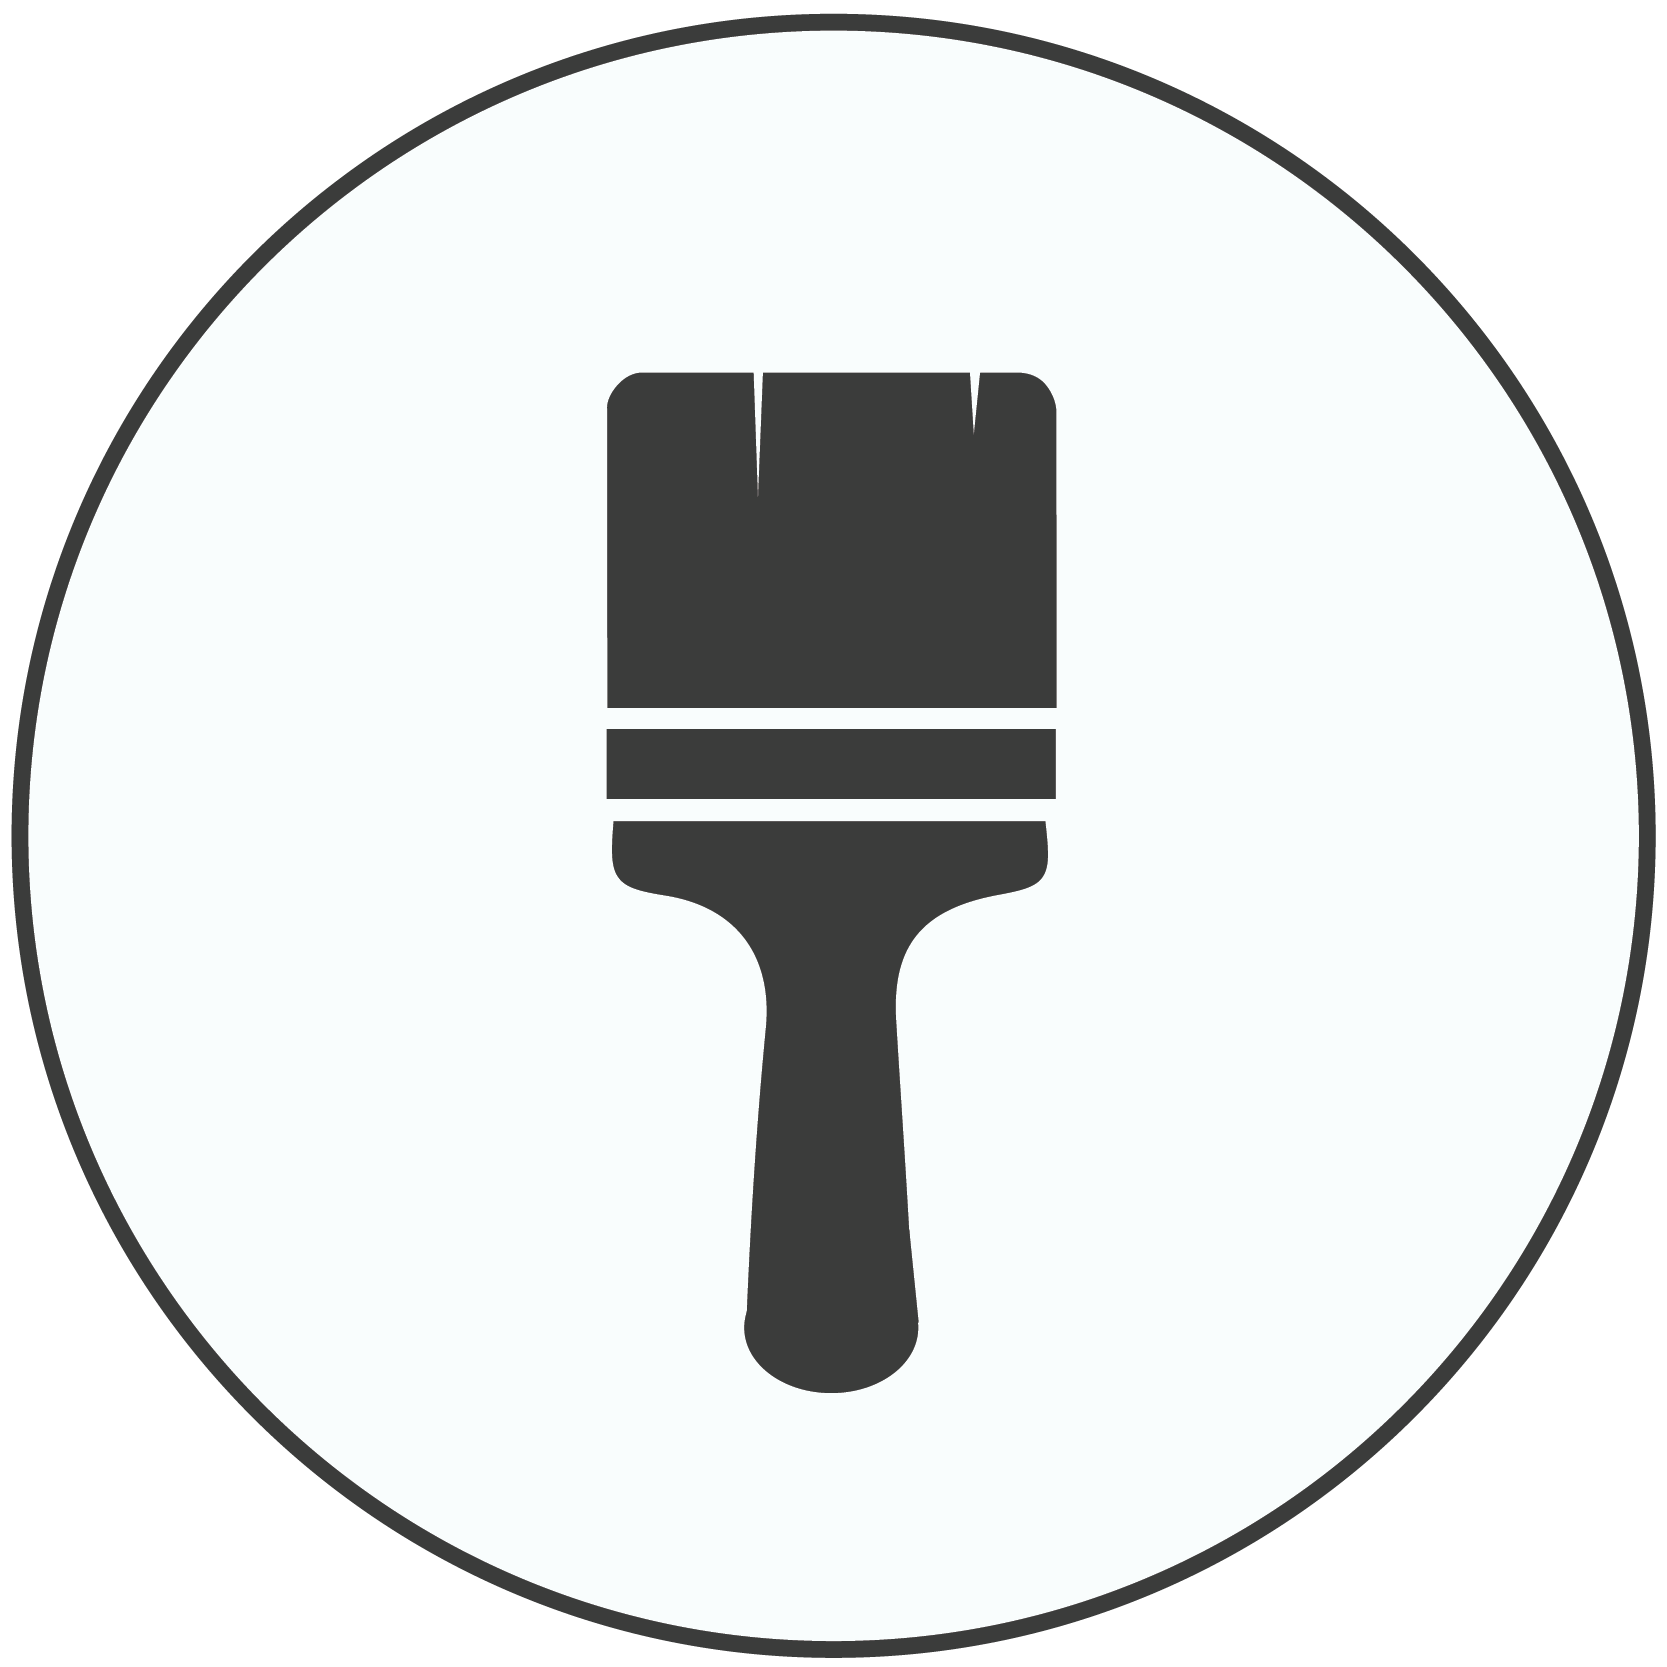 Gray icon of a paint brush